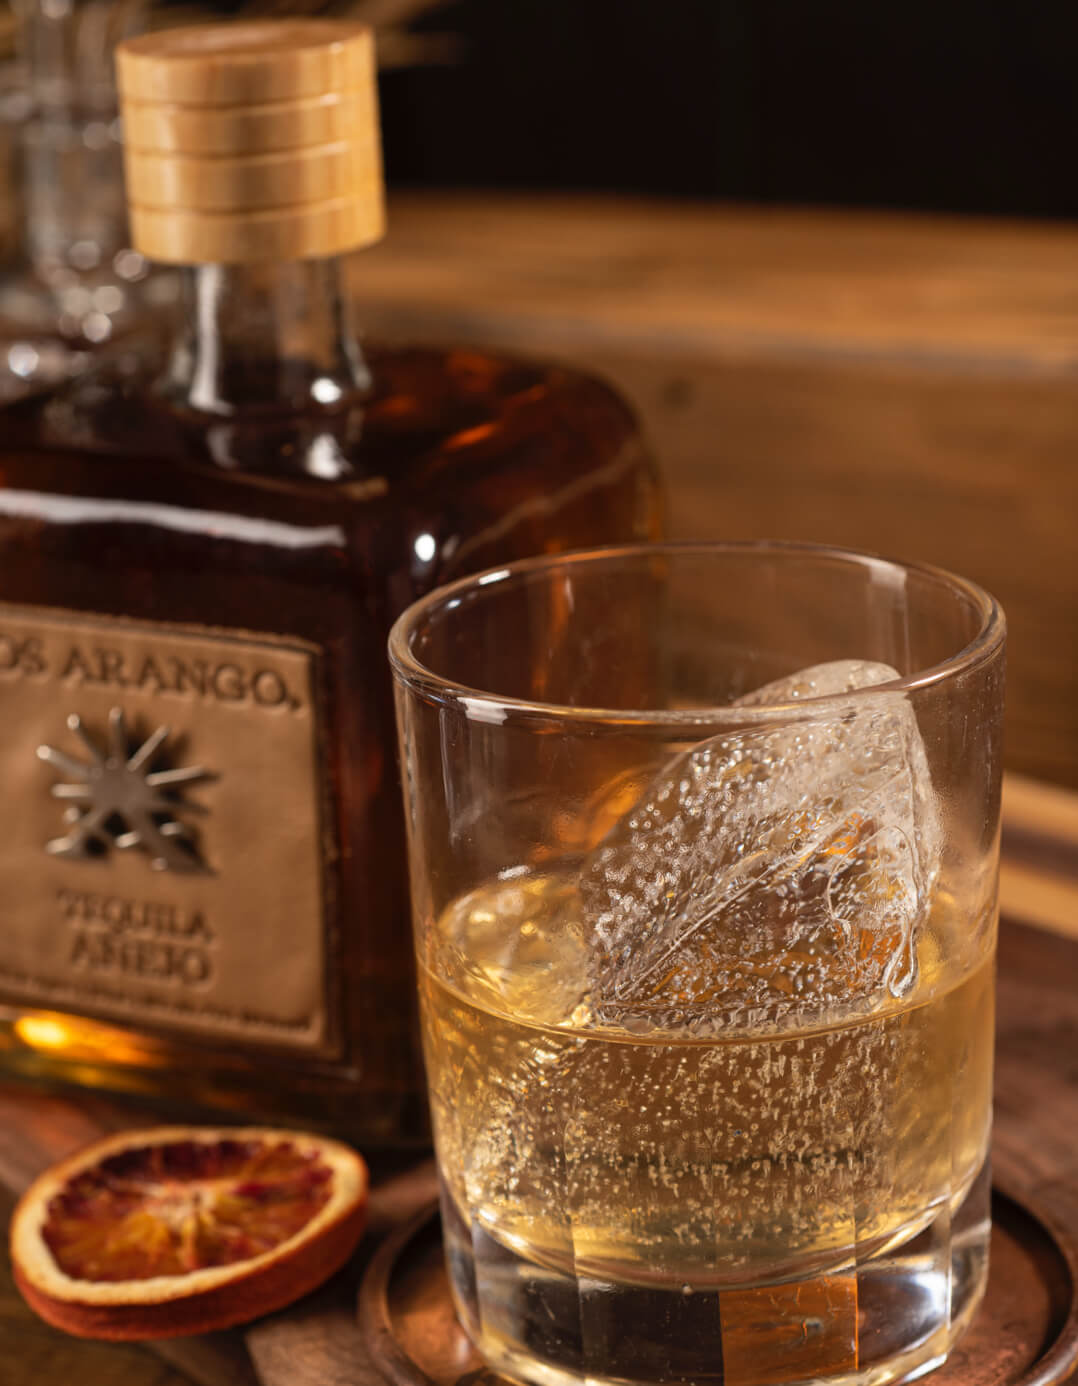 los arango añejo tequila served on the rocks